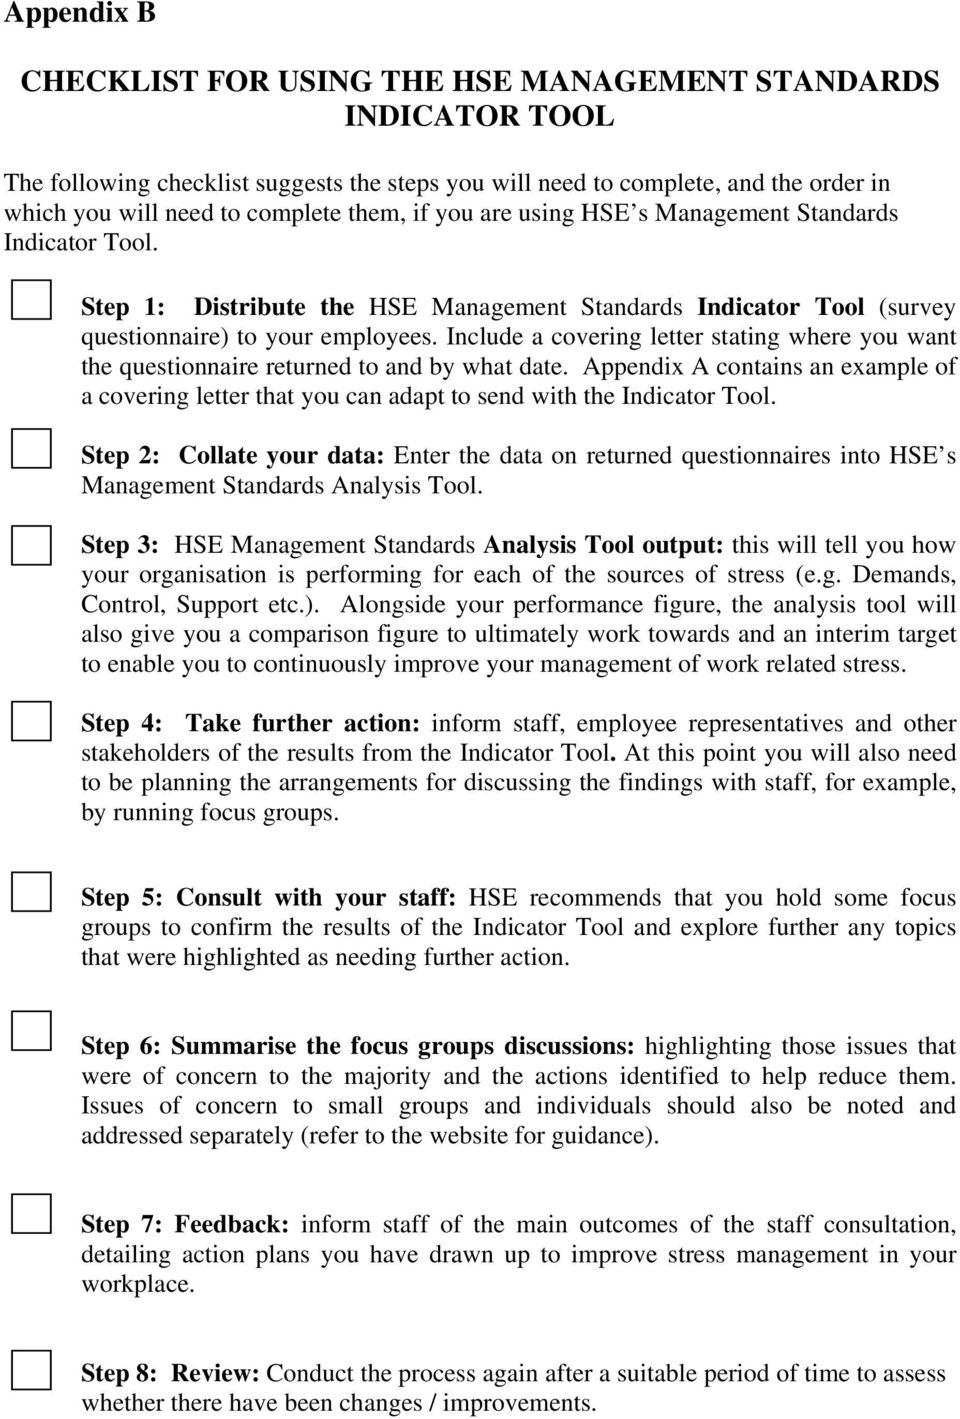 Hse Consultant Cover Letter Hse Management Standards Indicator Tool User Manual Pdf